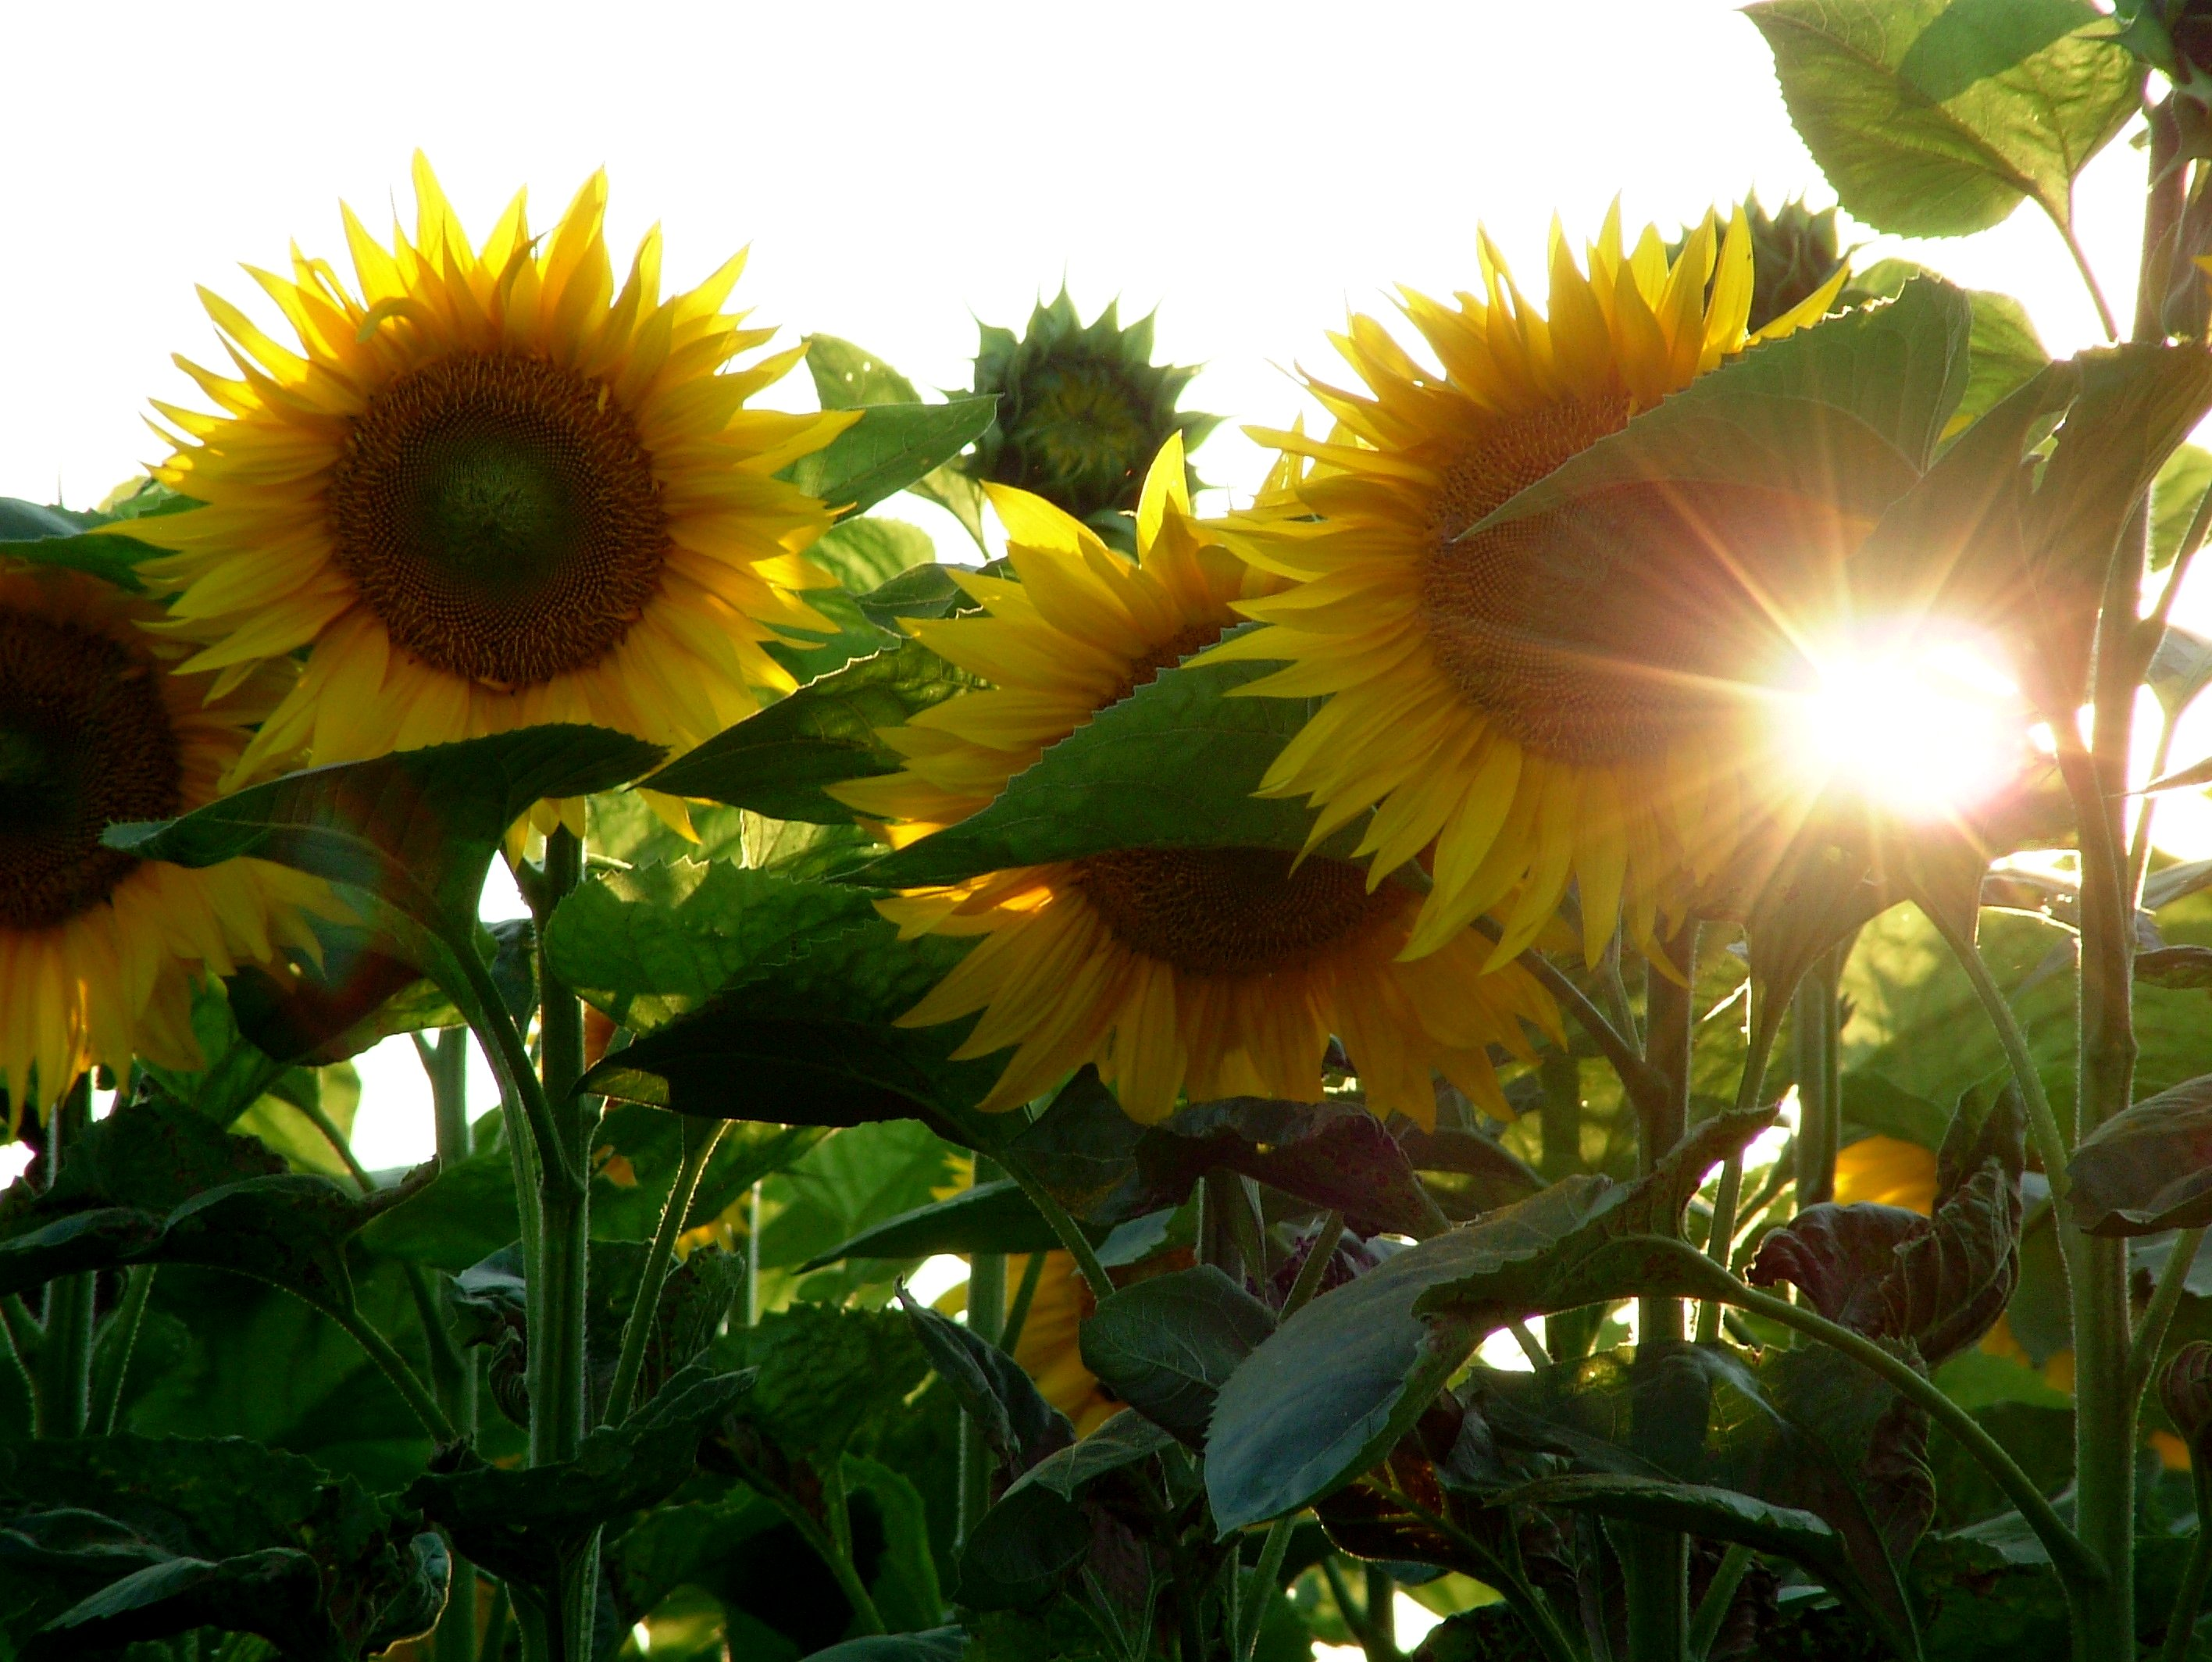 Photograph showing a field of sun flowers and ...